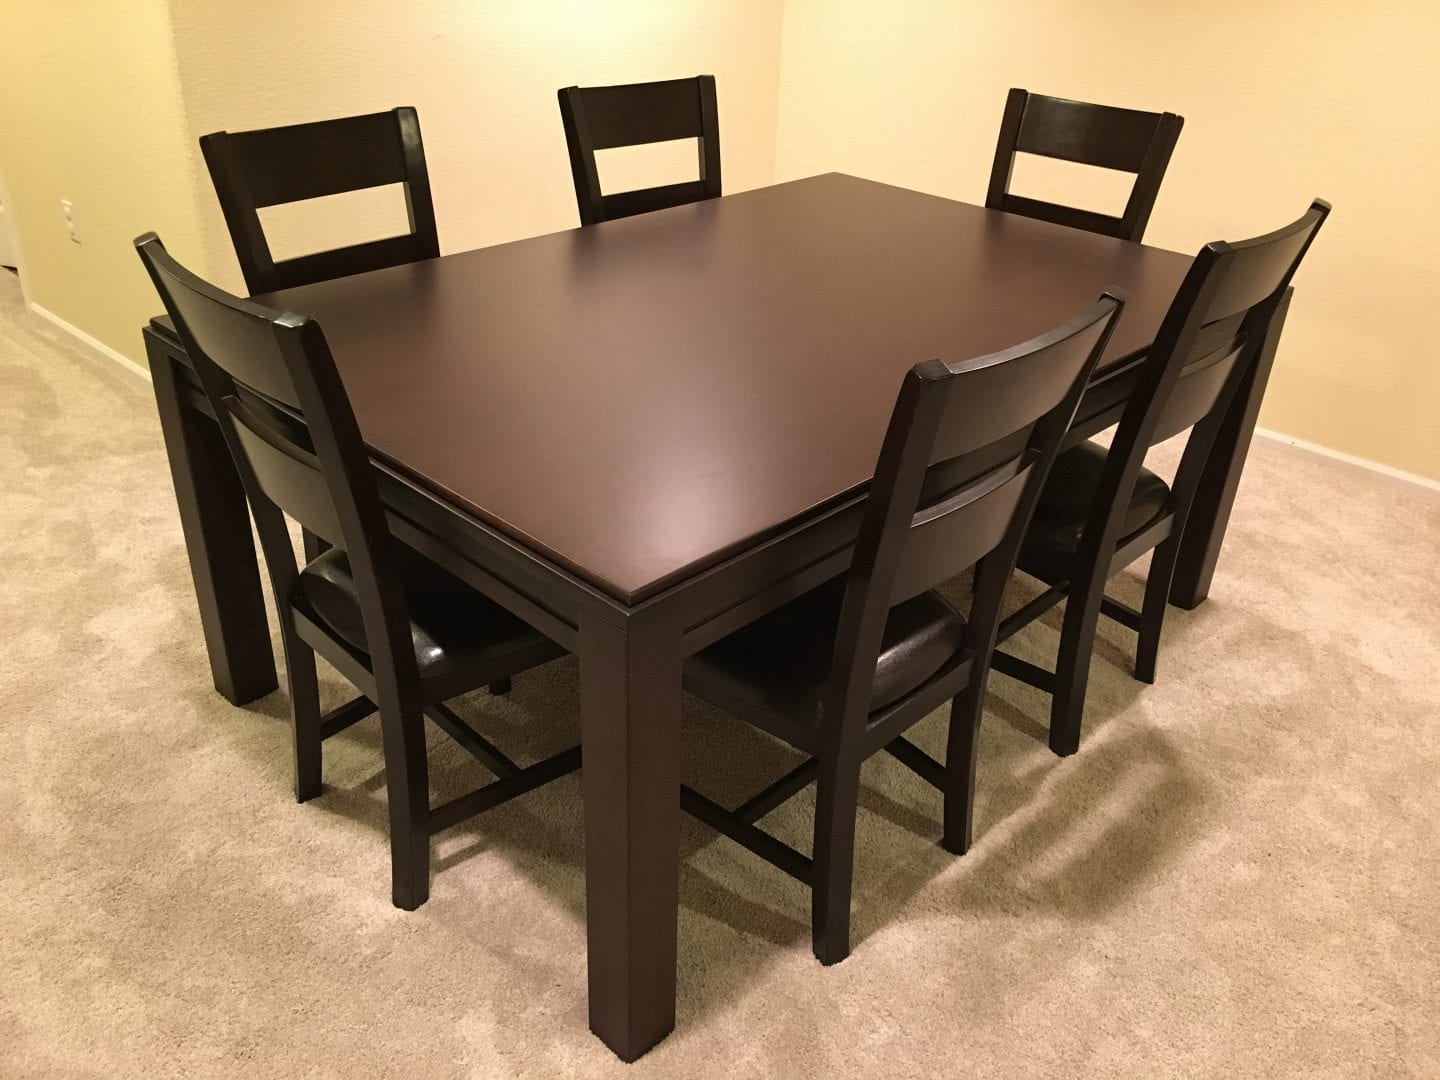 for everyday dining and game night - Design Dining Room Table